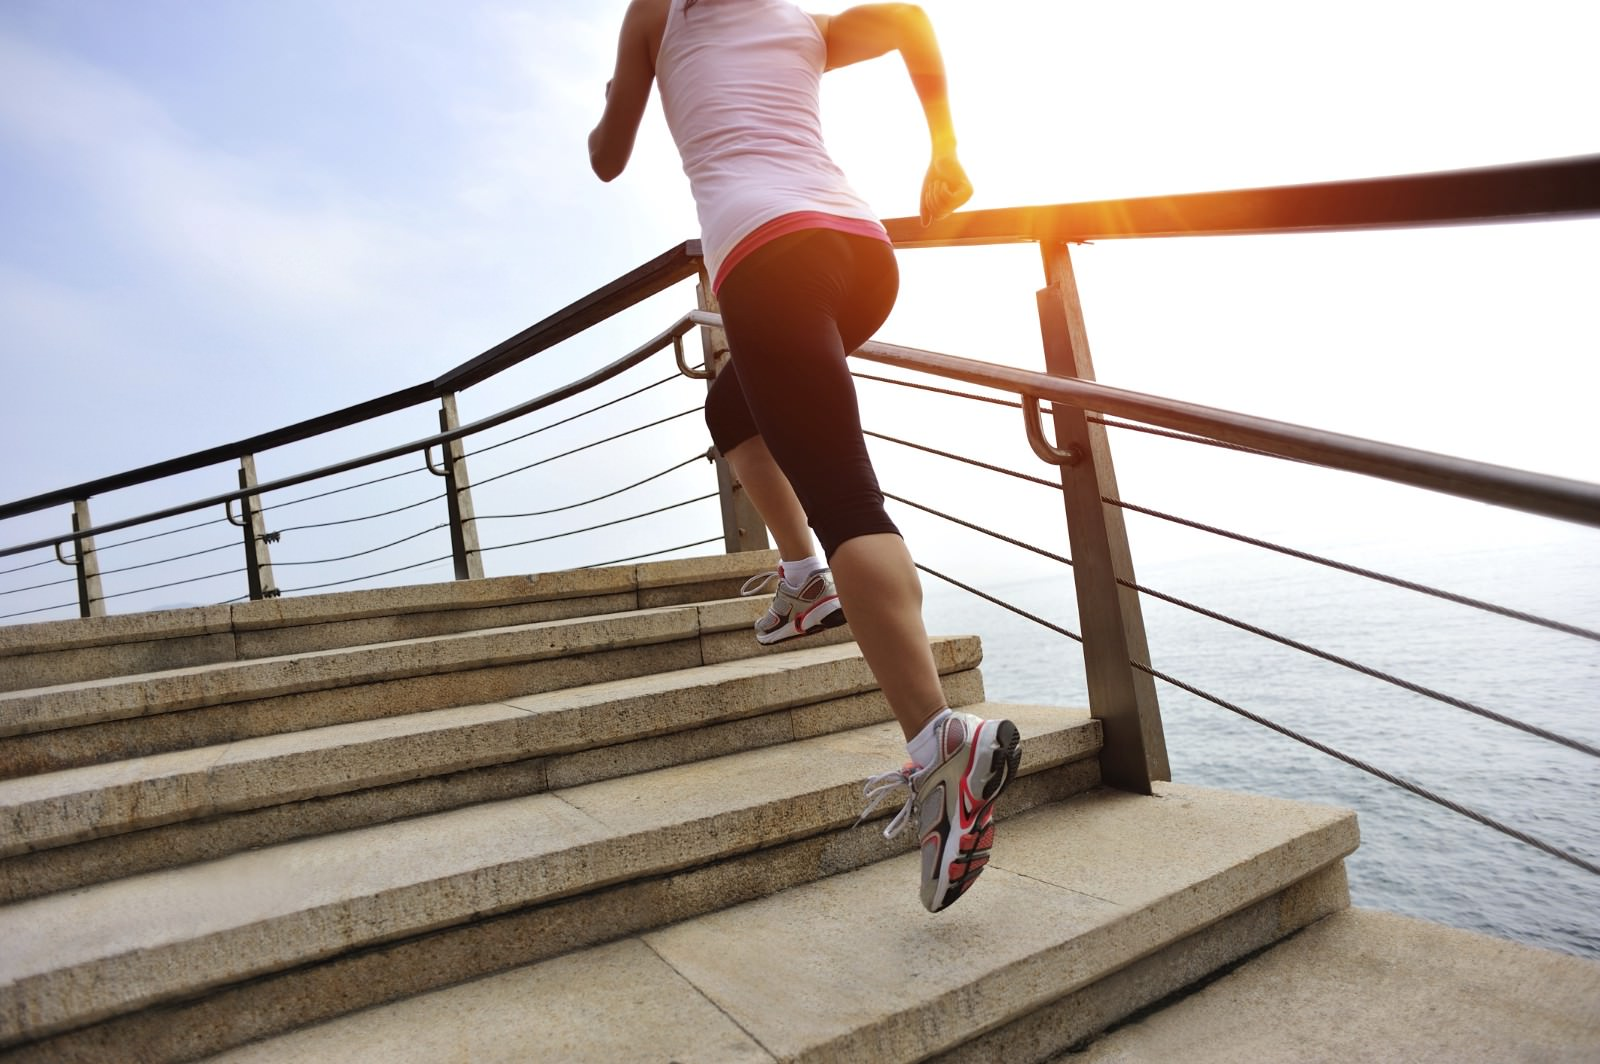 Stair Climbing: What are the Health Benefits Of Walking Up Stairs